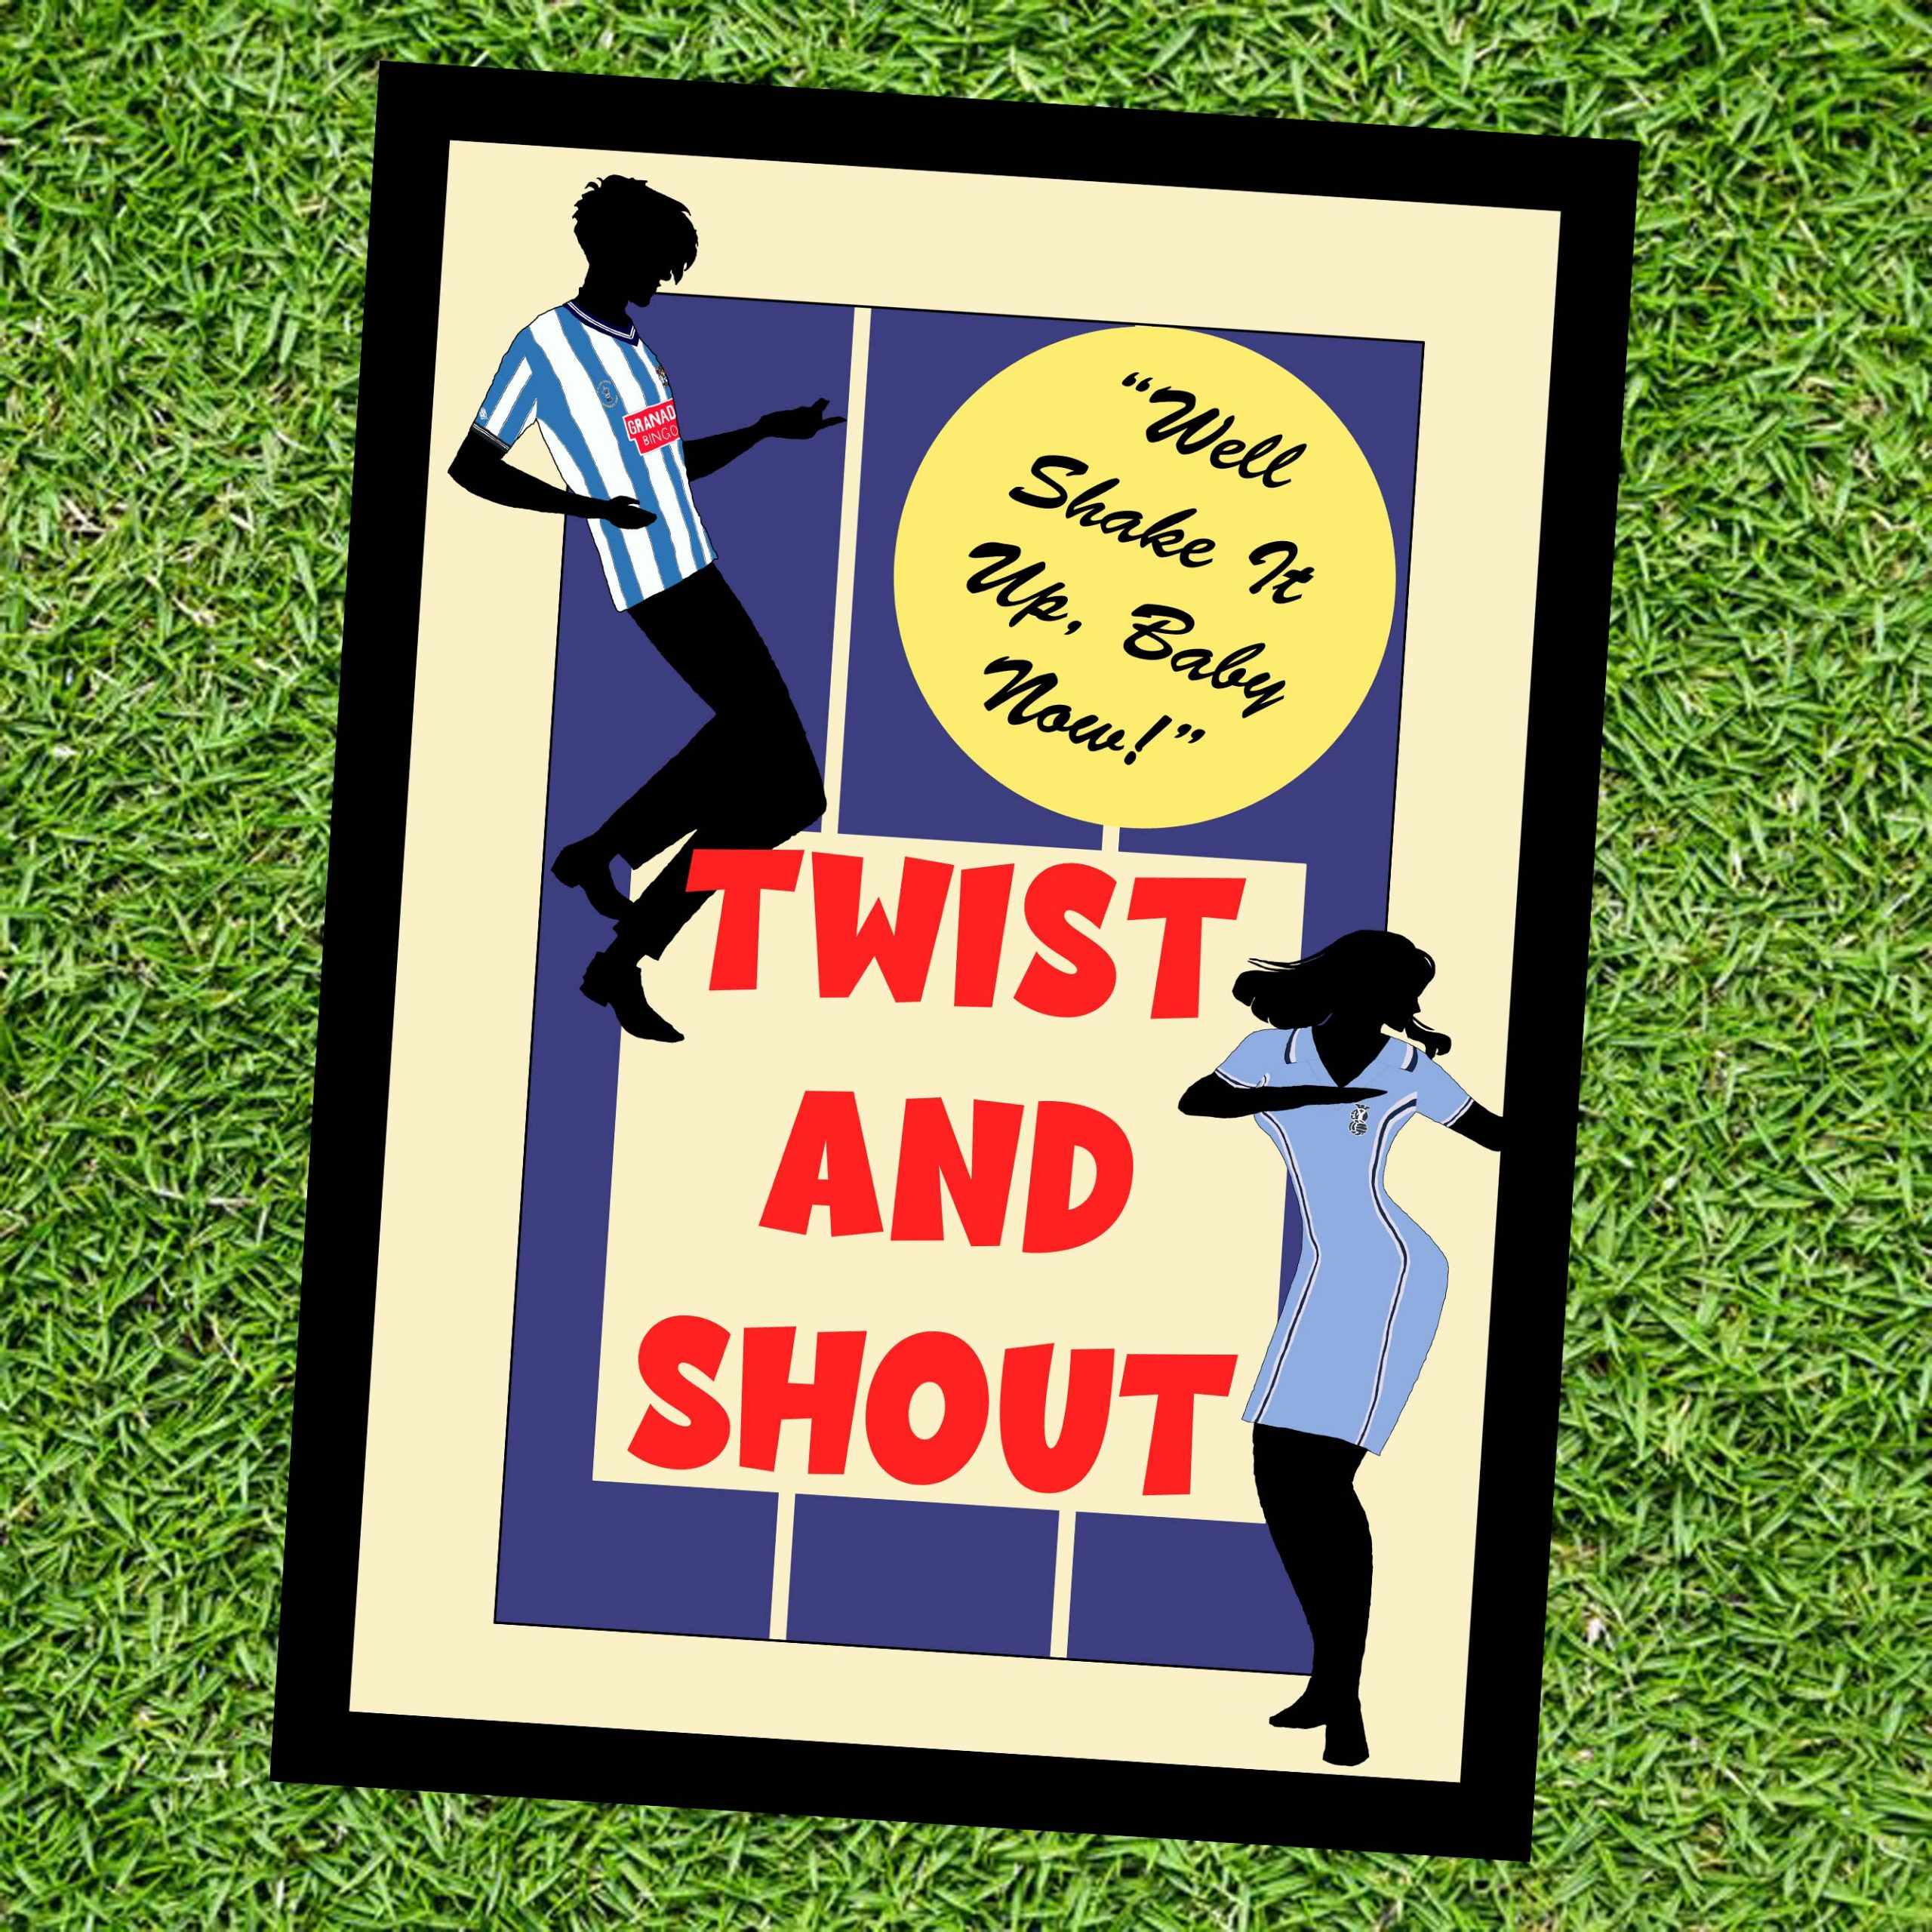 Twist and Shout Wall Art Print - on Grass - Coventry City CCFC - MaadWeb